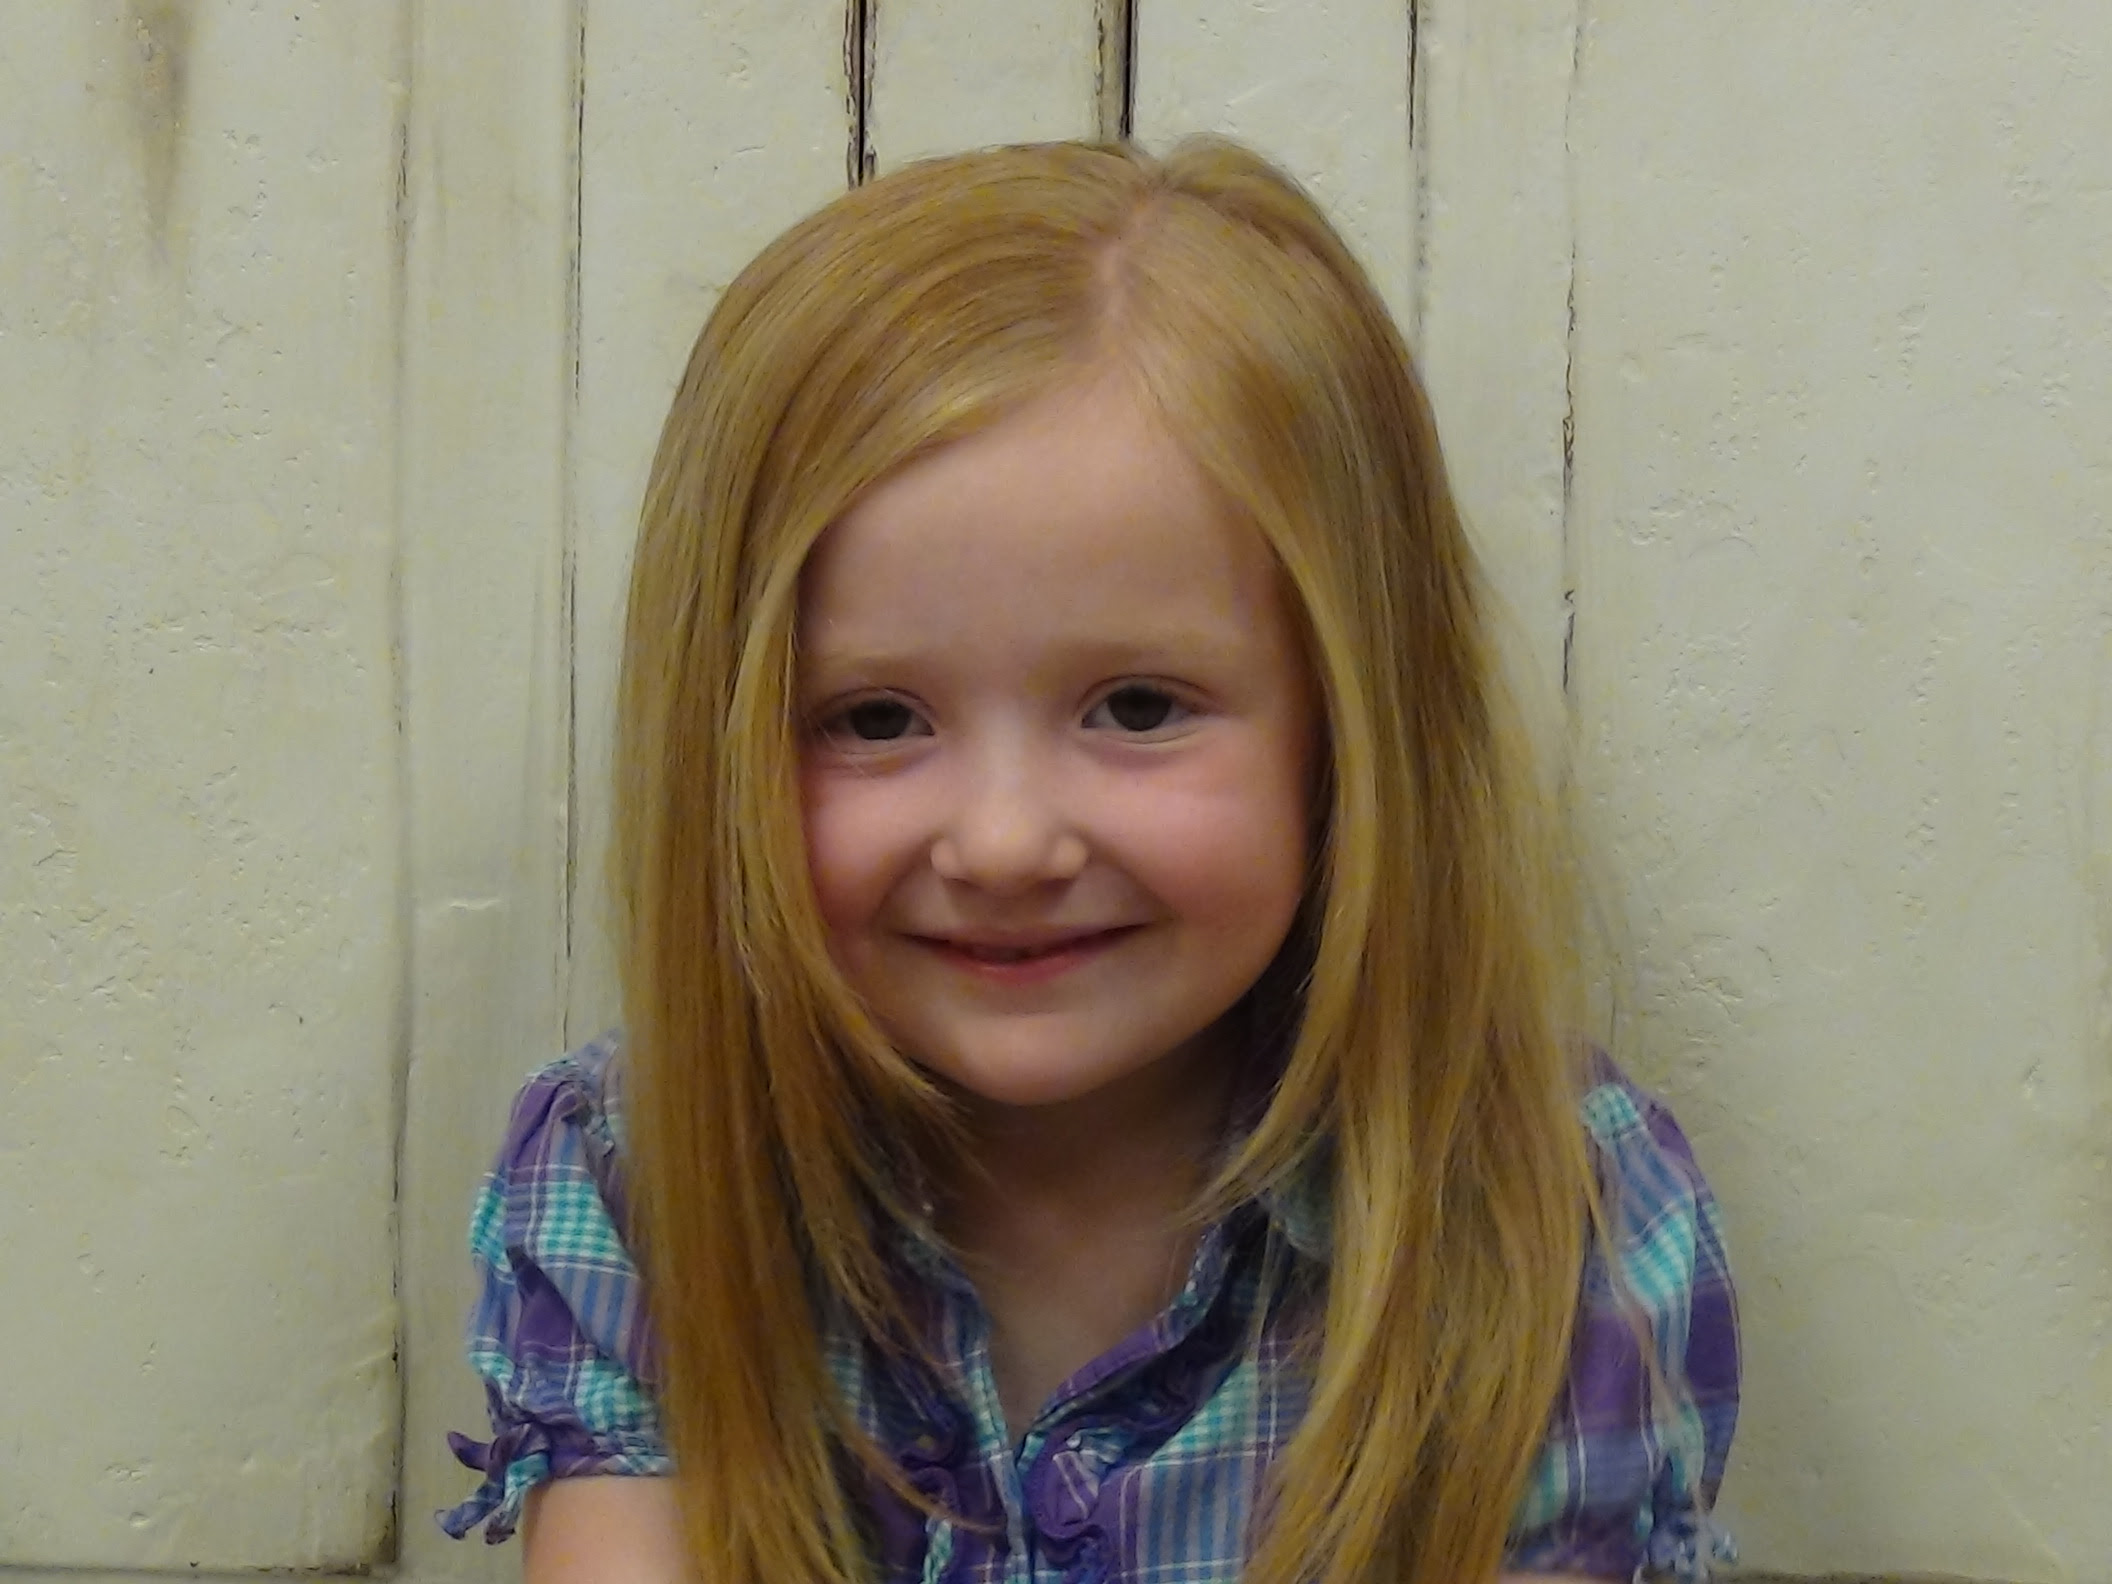 Girls Hairstyles Photos Pictures Images Cute Little Girl Hairstyles